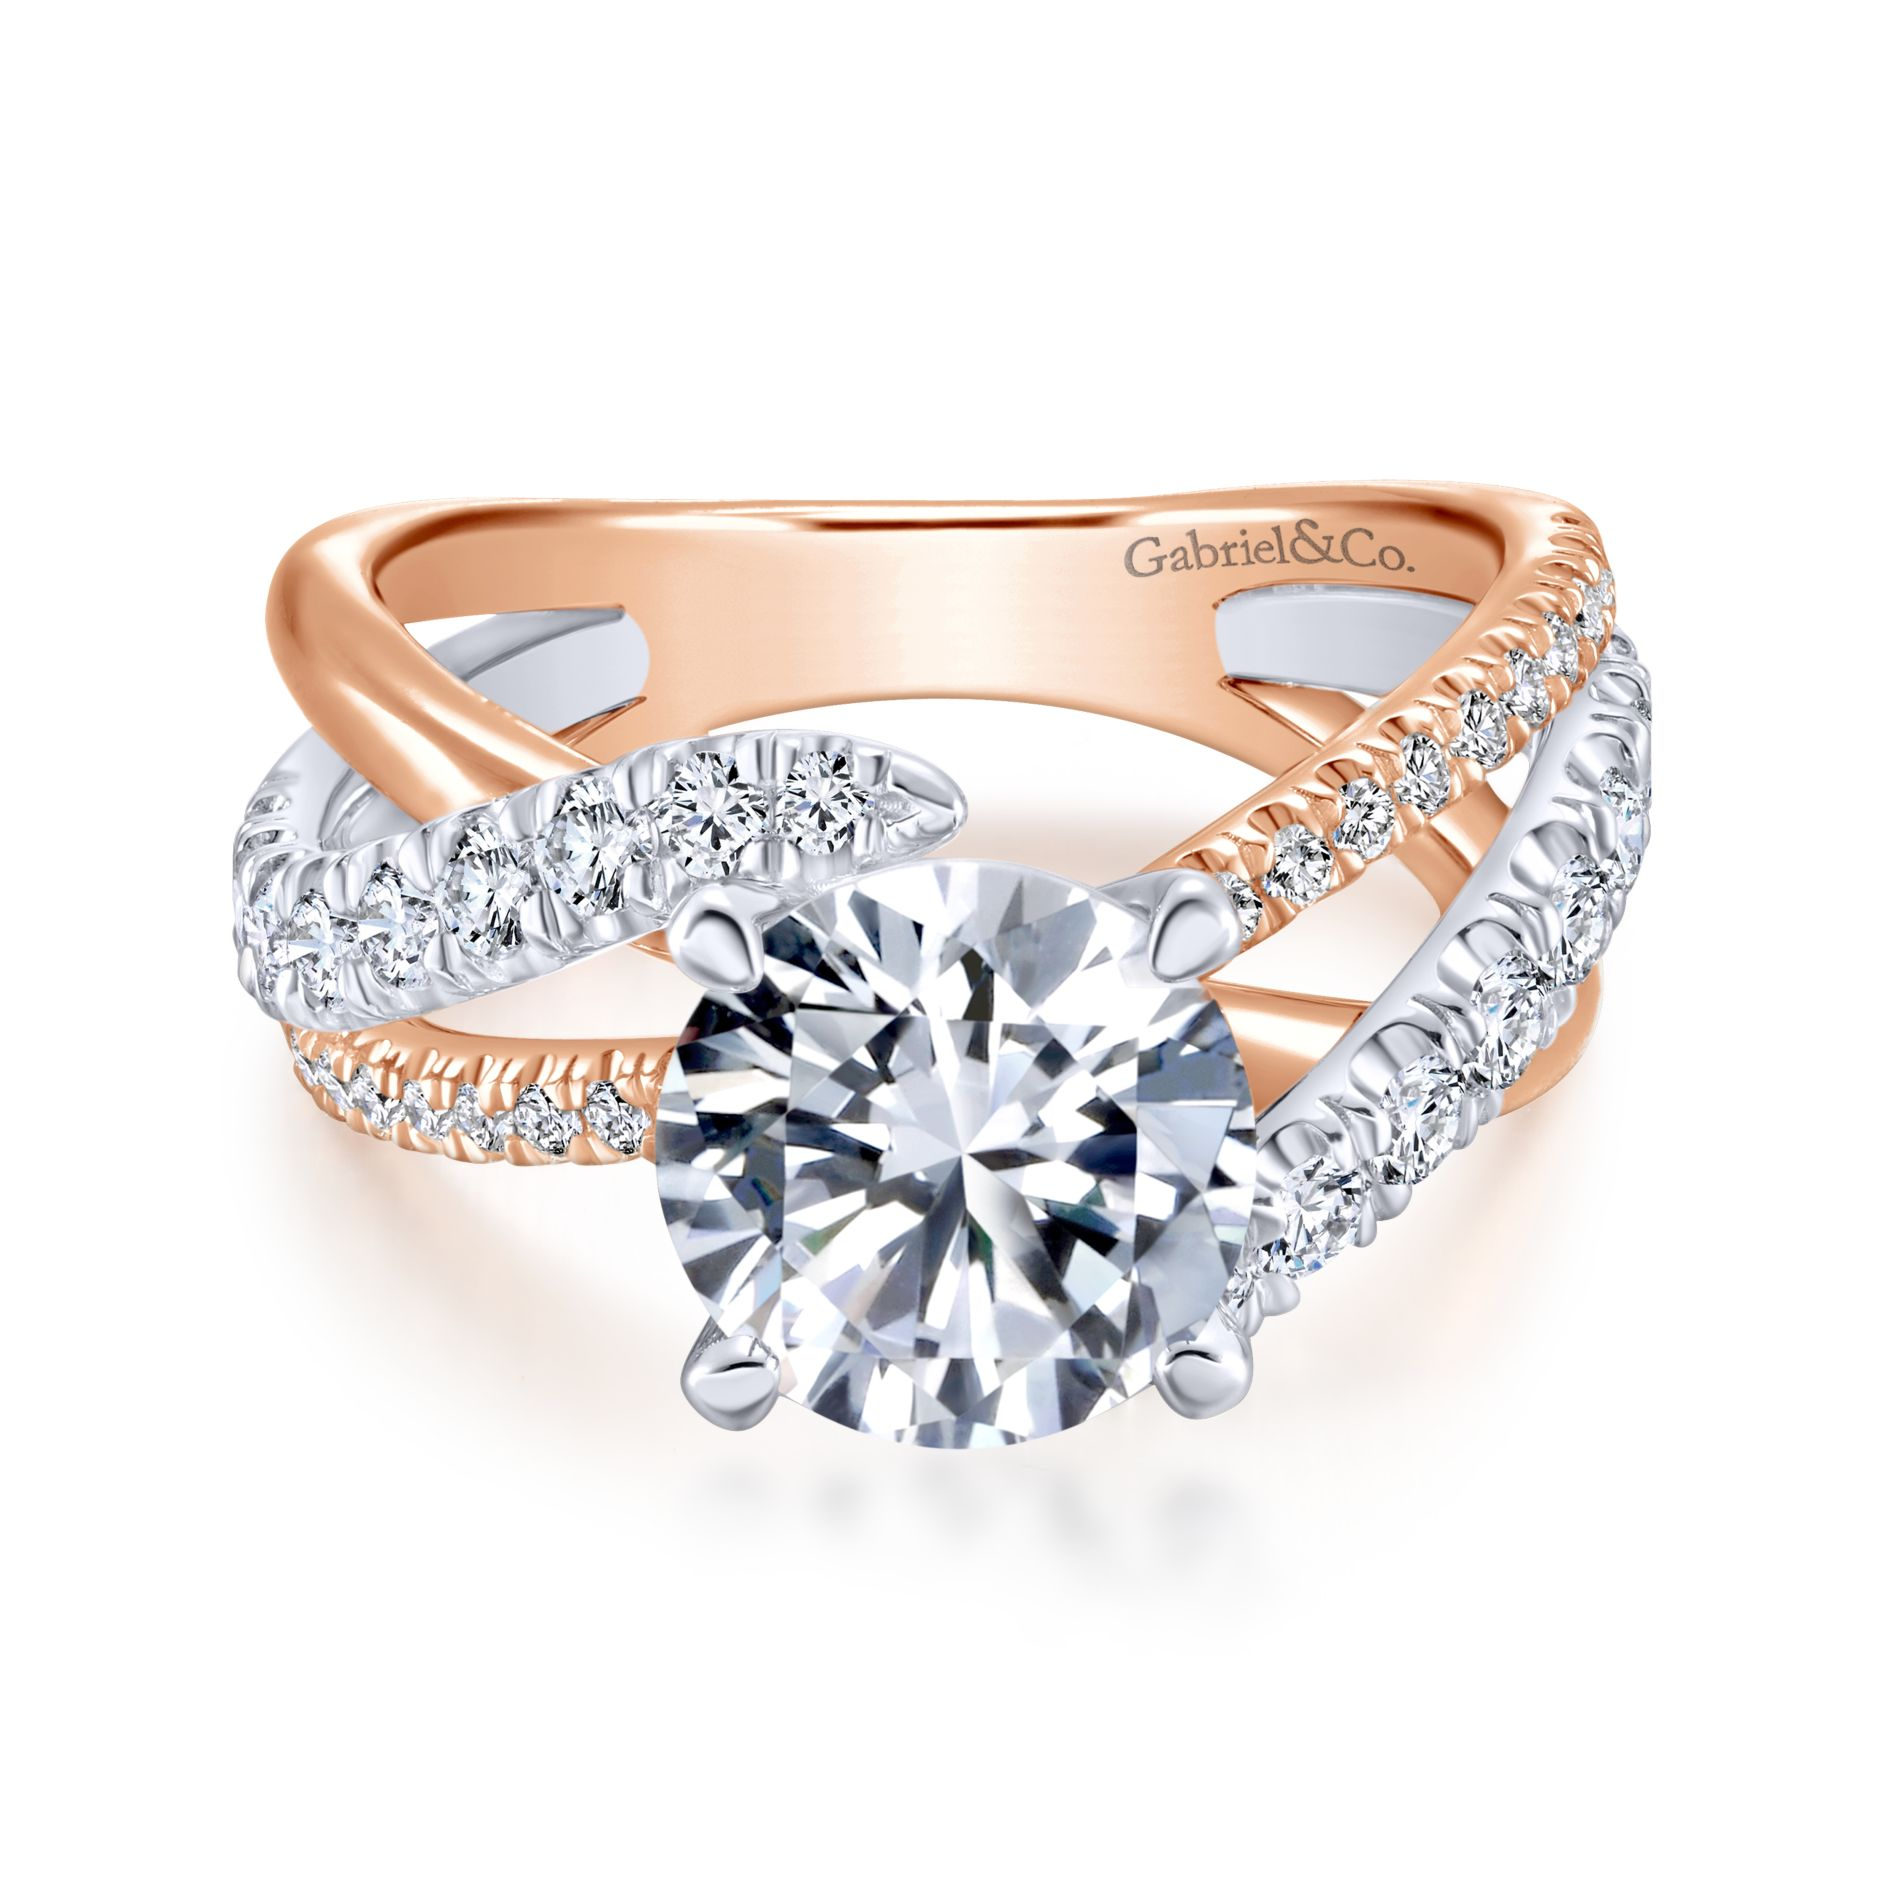 WHITE/ROSE GOLD ROUND FREE FORM DIAMOND ENGAGEMENT RING by Gabriel & Co